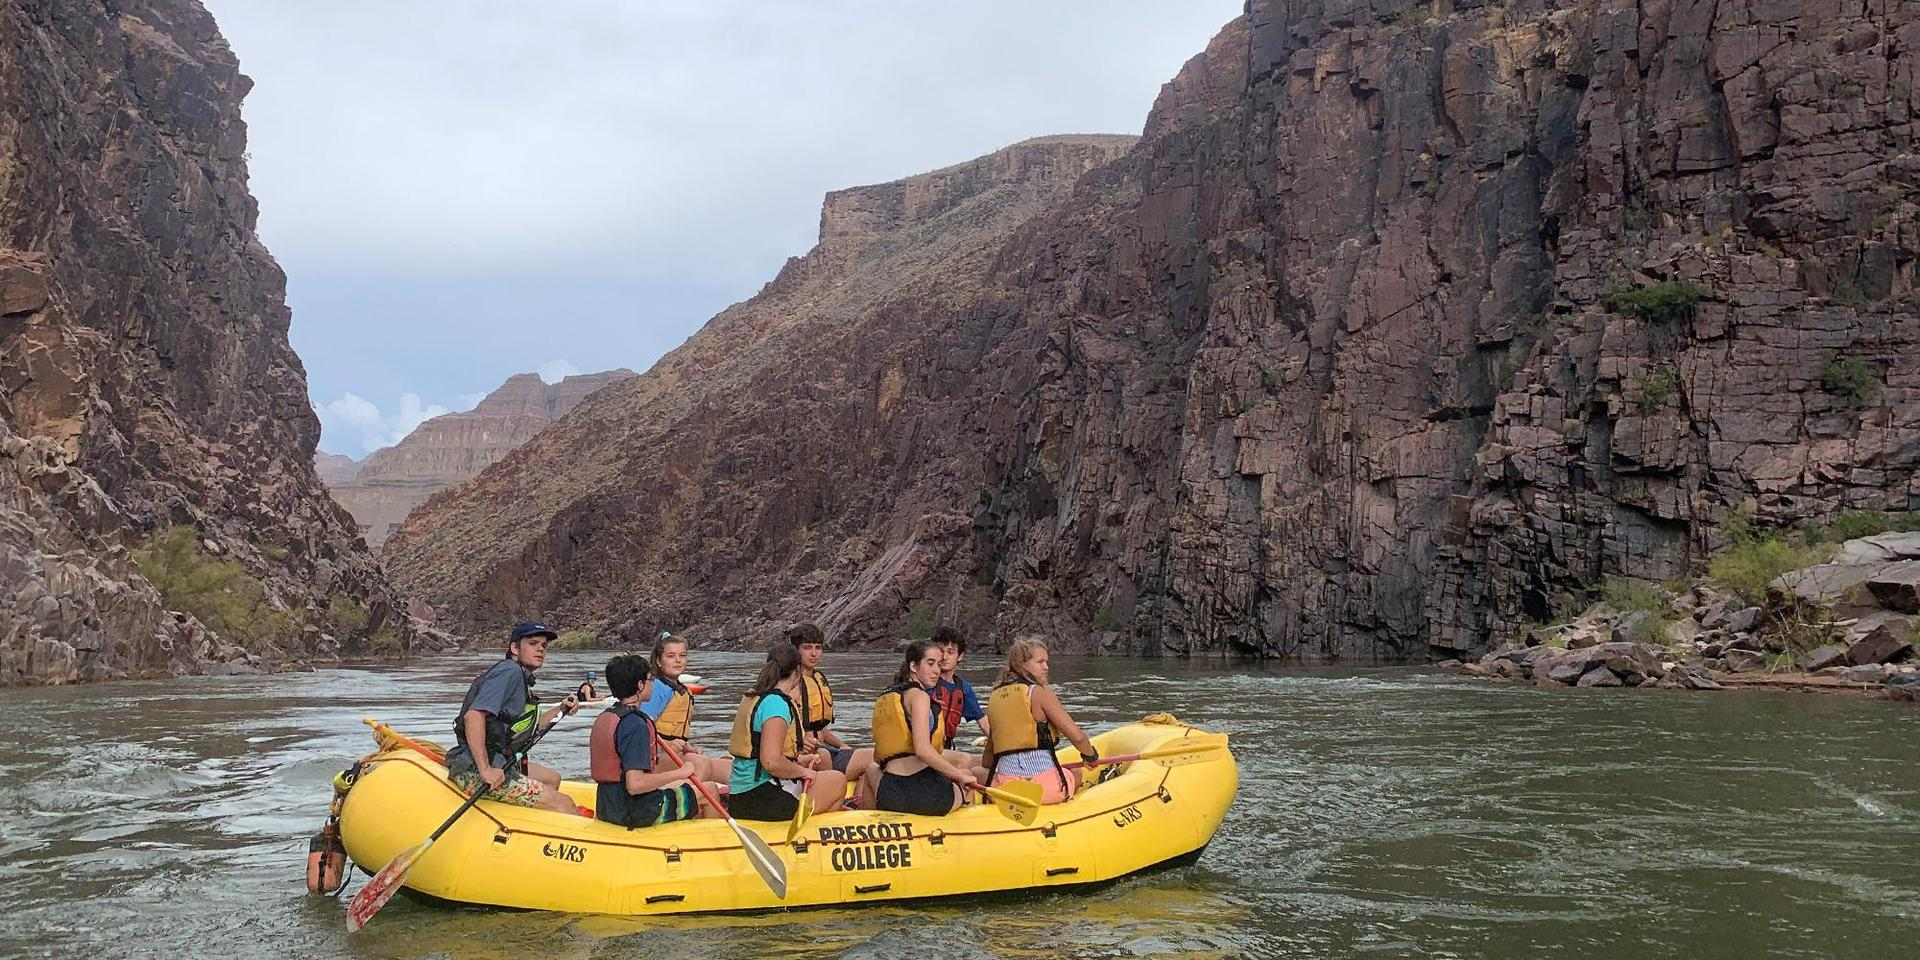 Students rafting down the Colorado River.